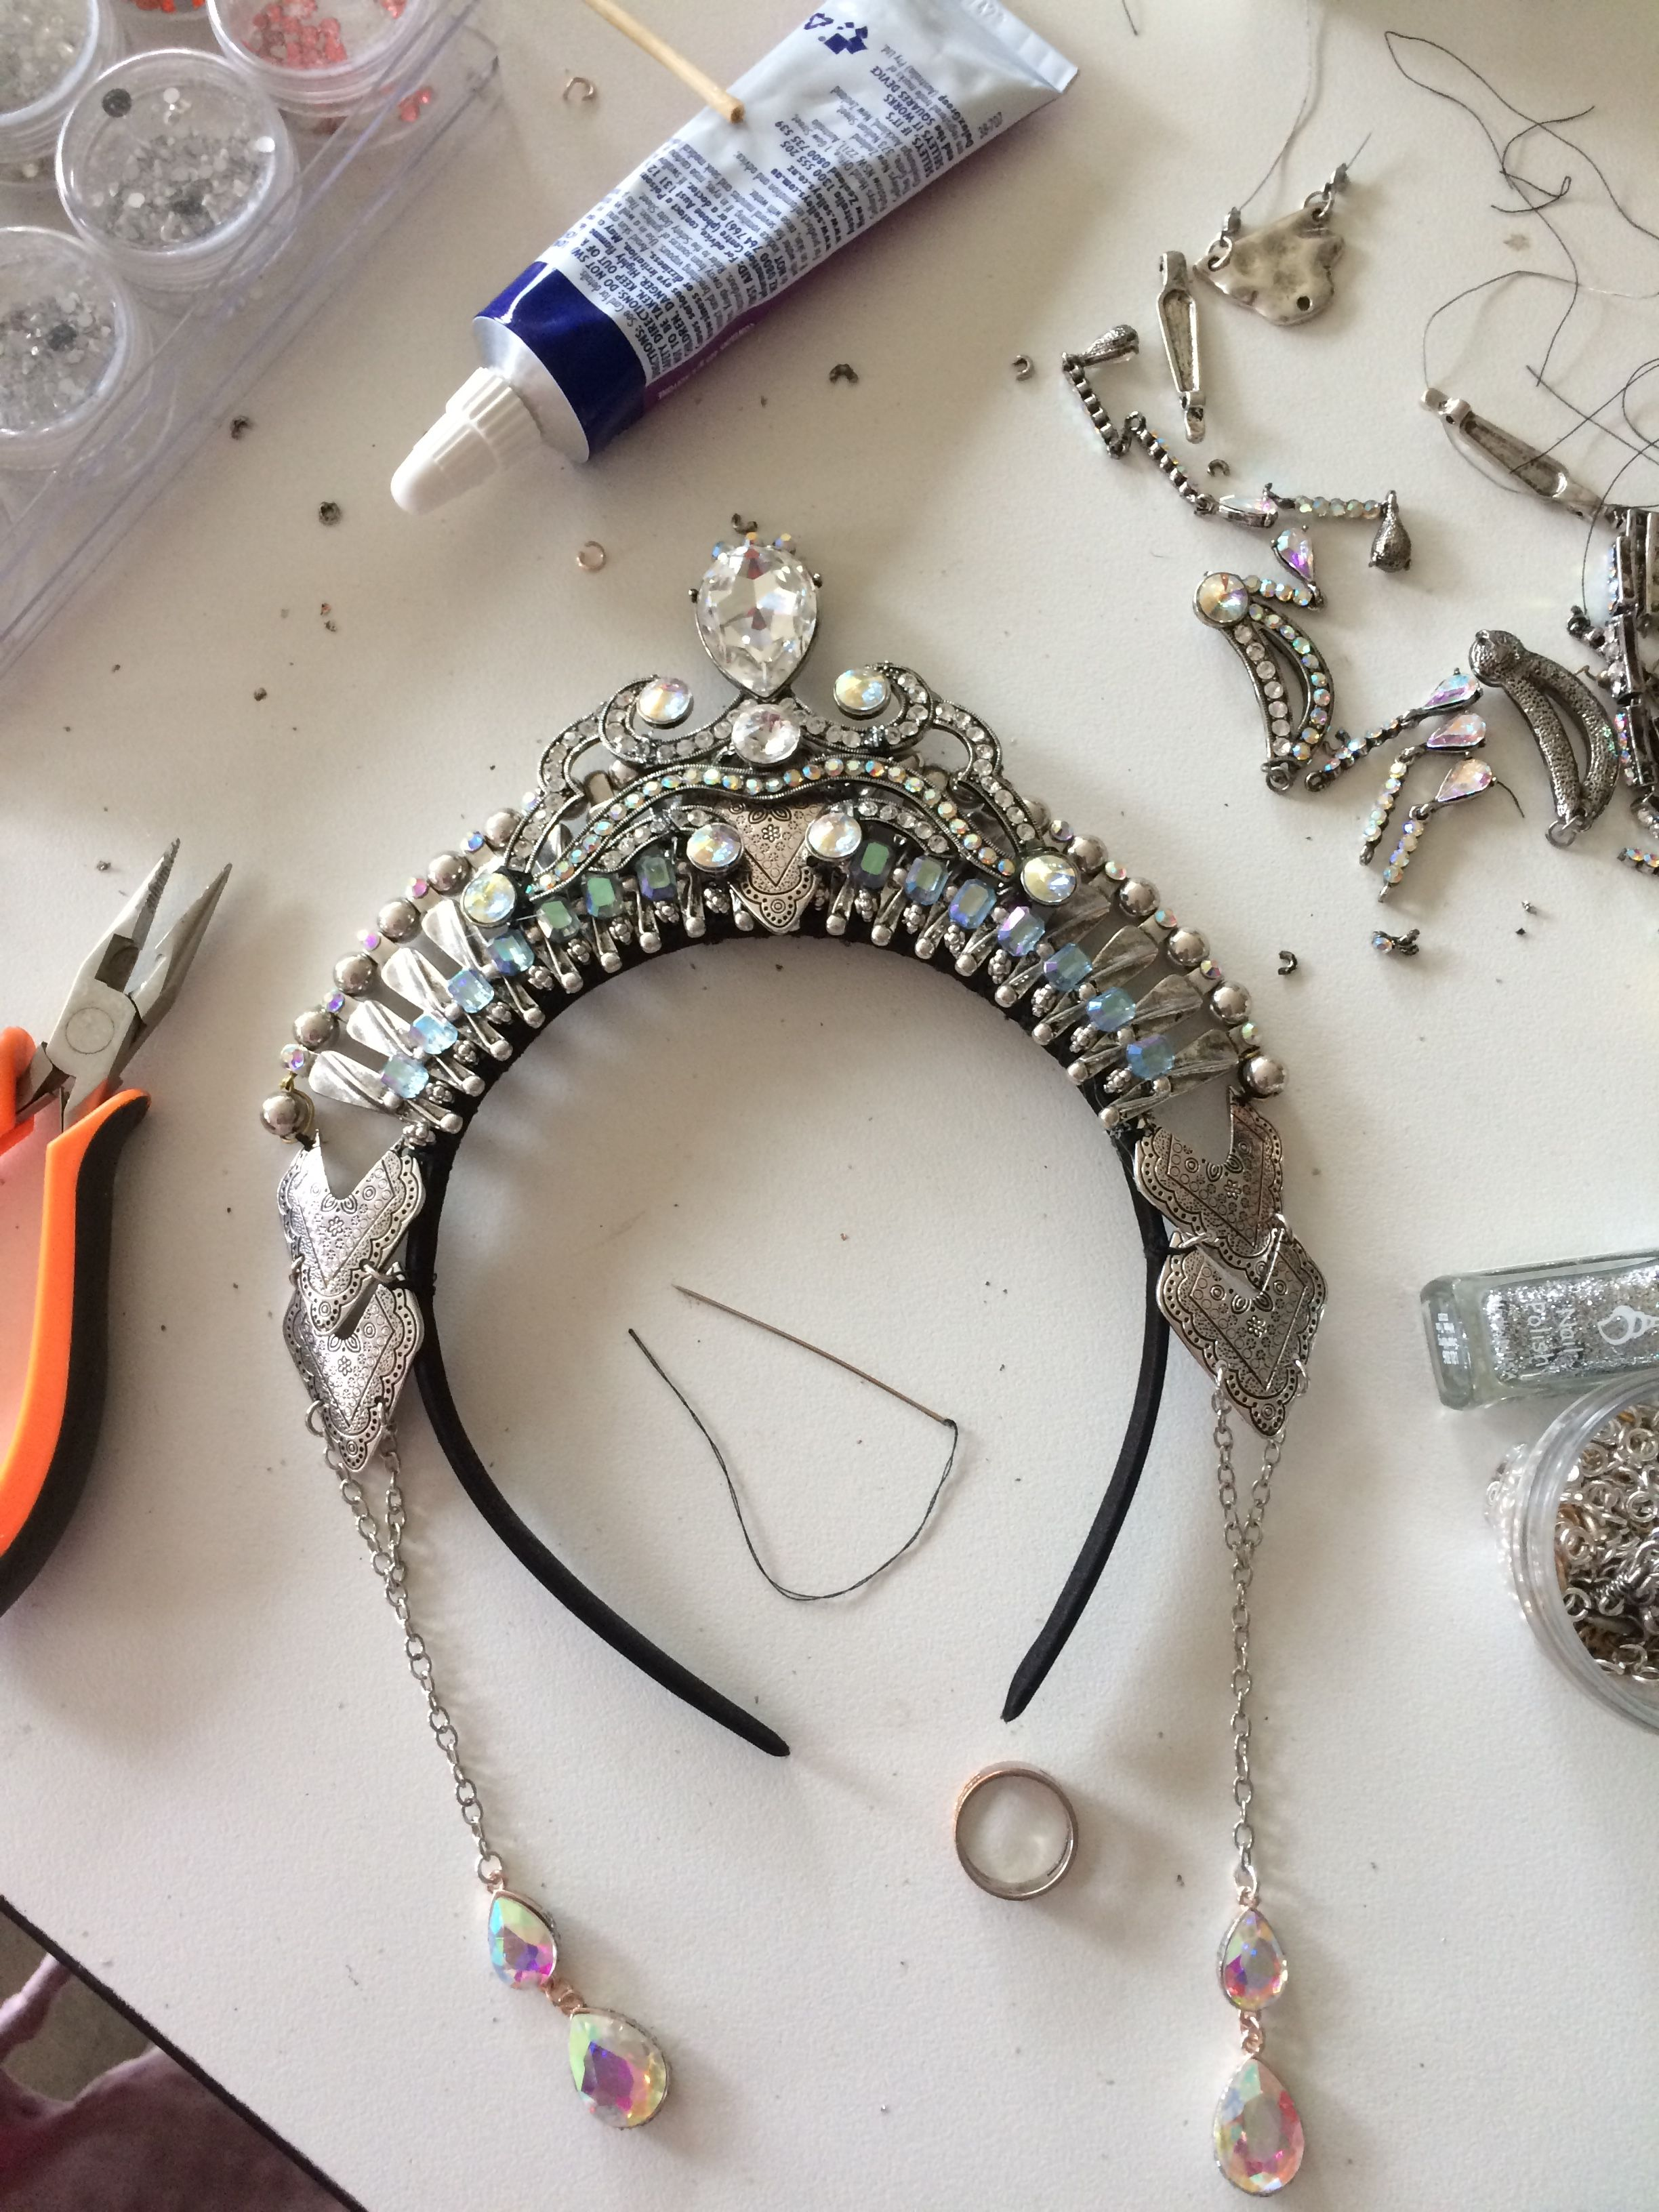 Recently honoured to create a beautiful headband for a regular customer to compliment a costume being worn her fringe show  Love doing one off luxe theatrical creations  This one is for an Ice theme #crowntiara